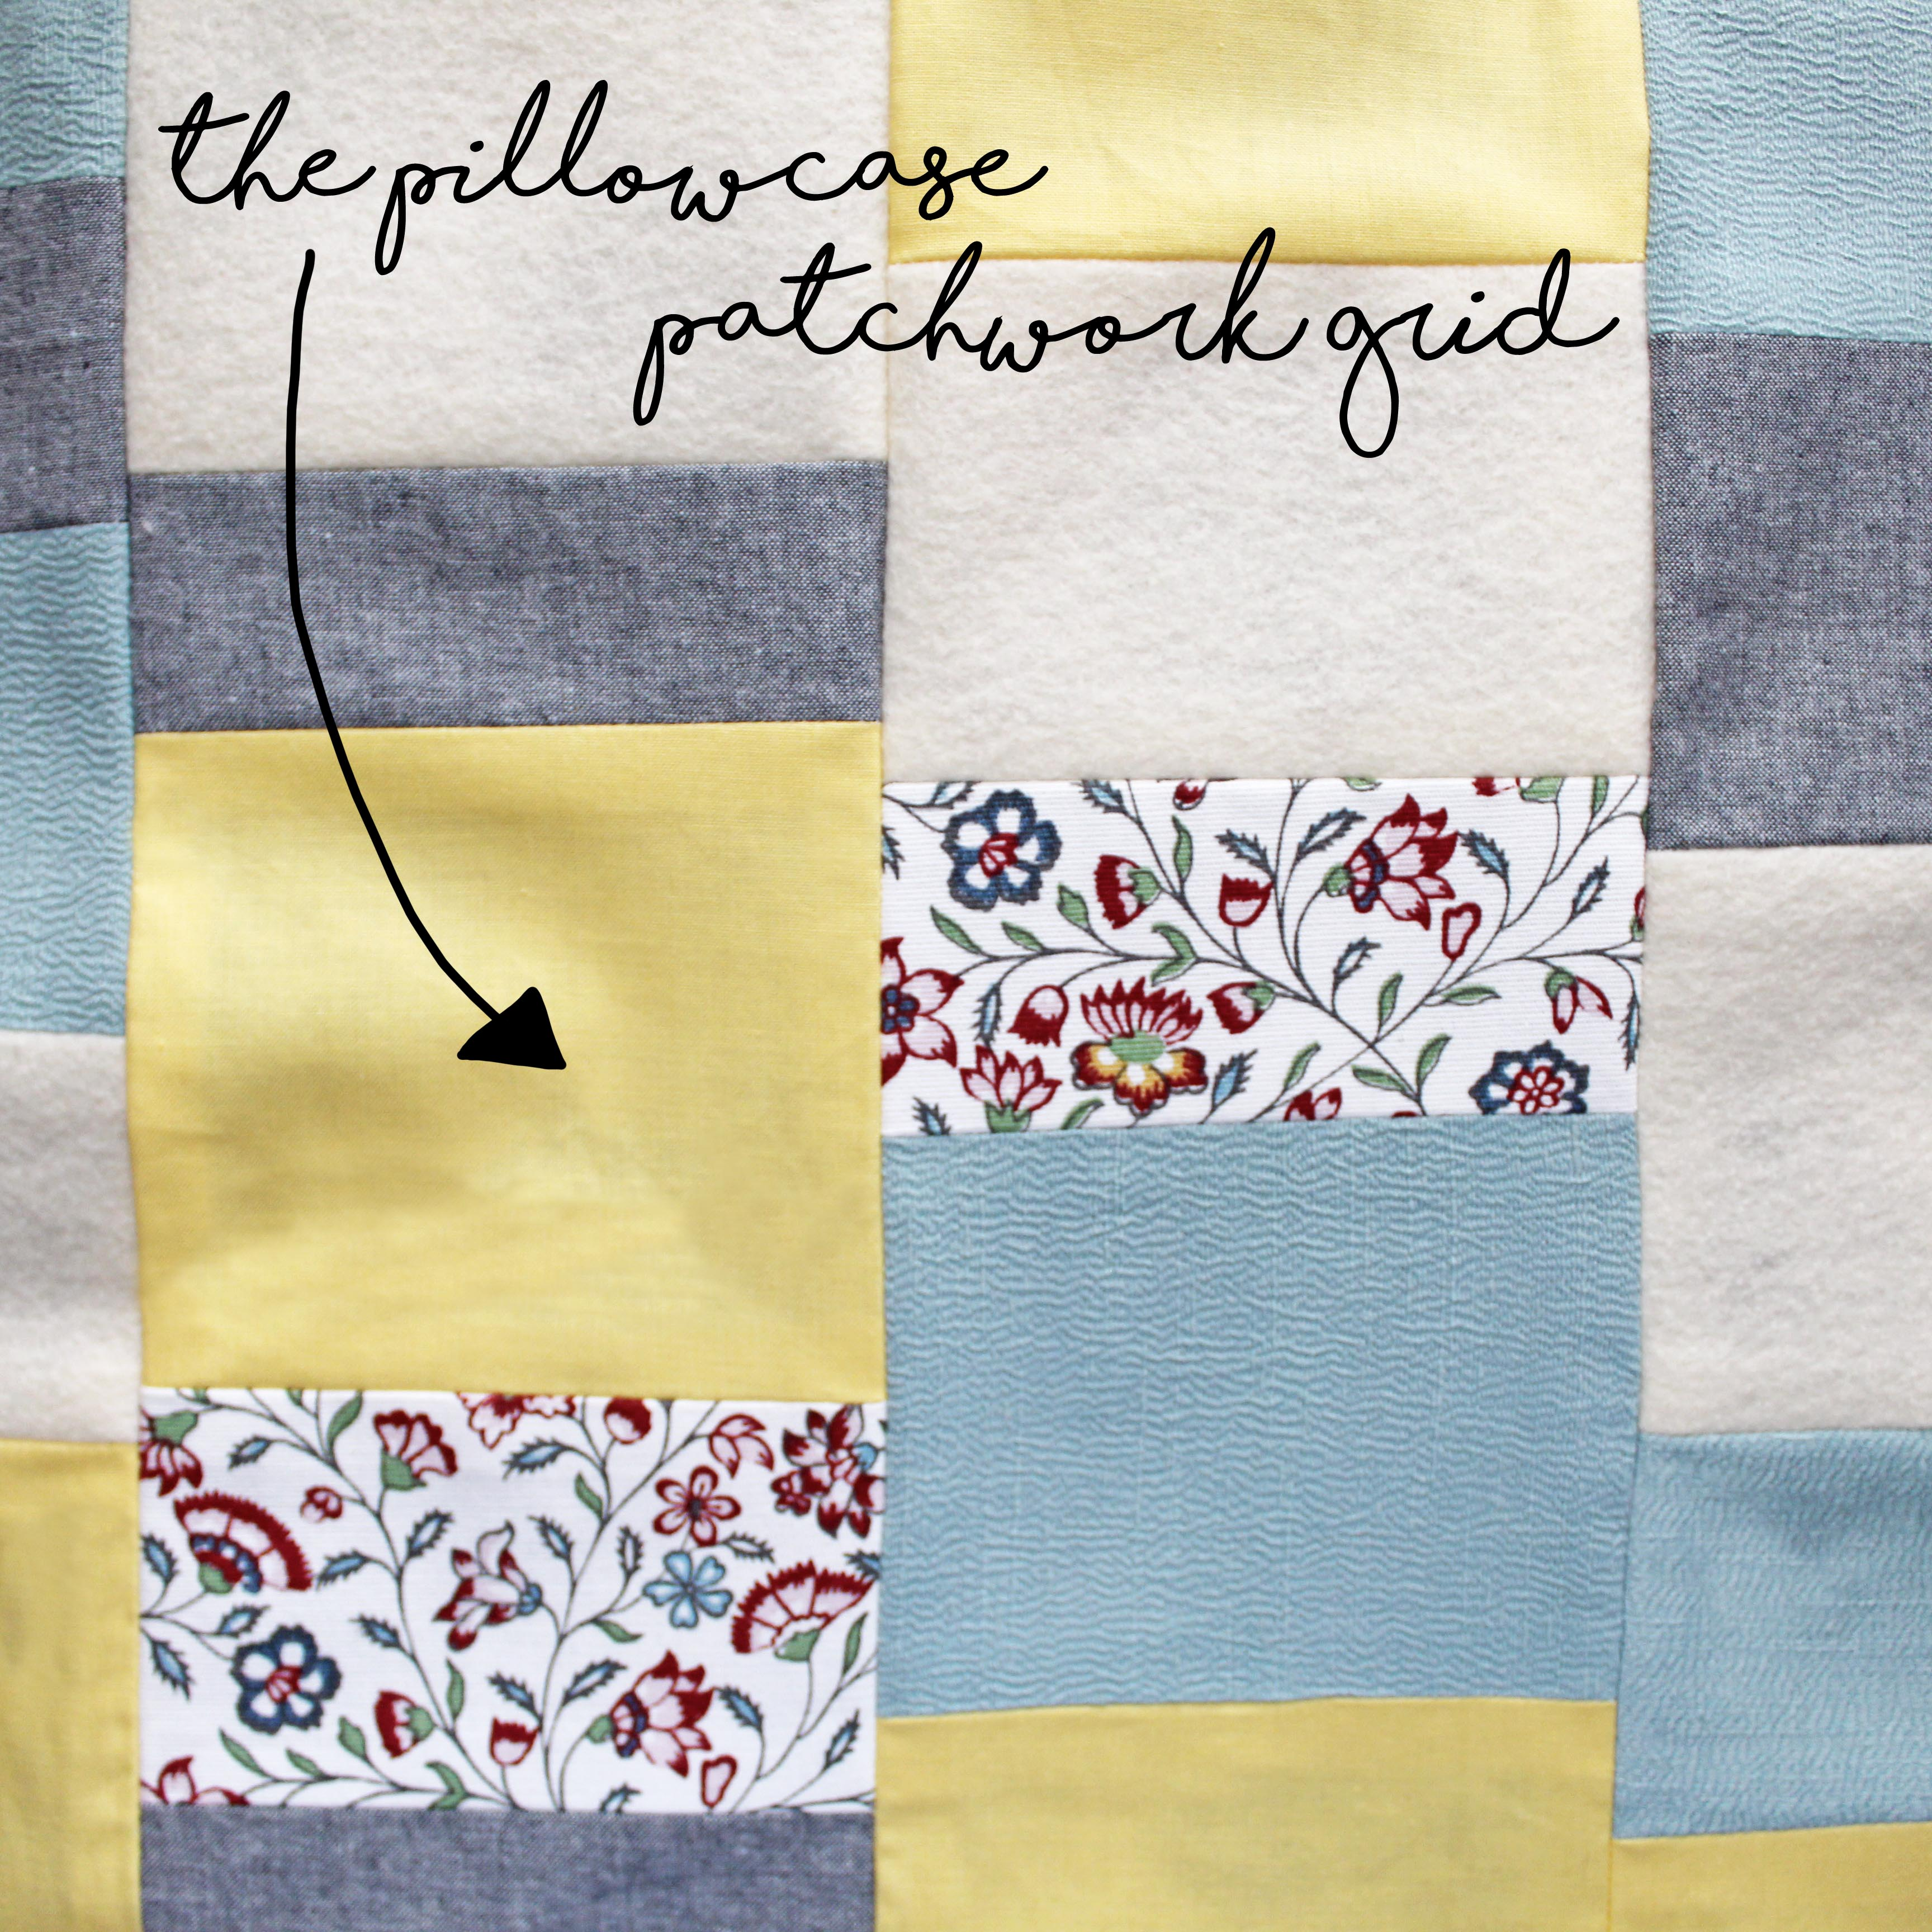 How To Sew A Pillow Patchwork Grid Close Up